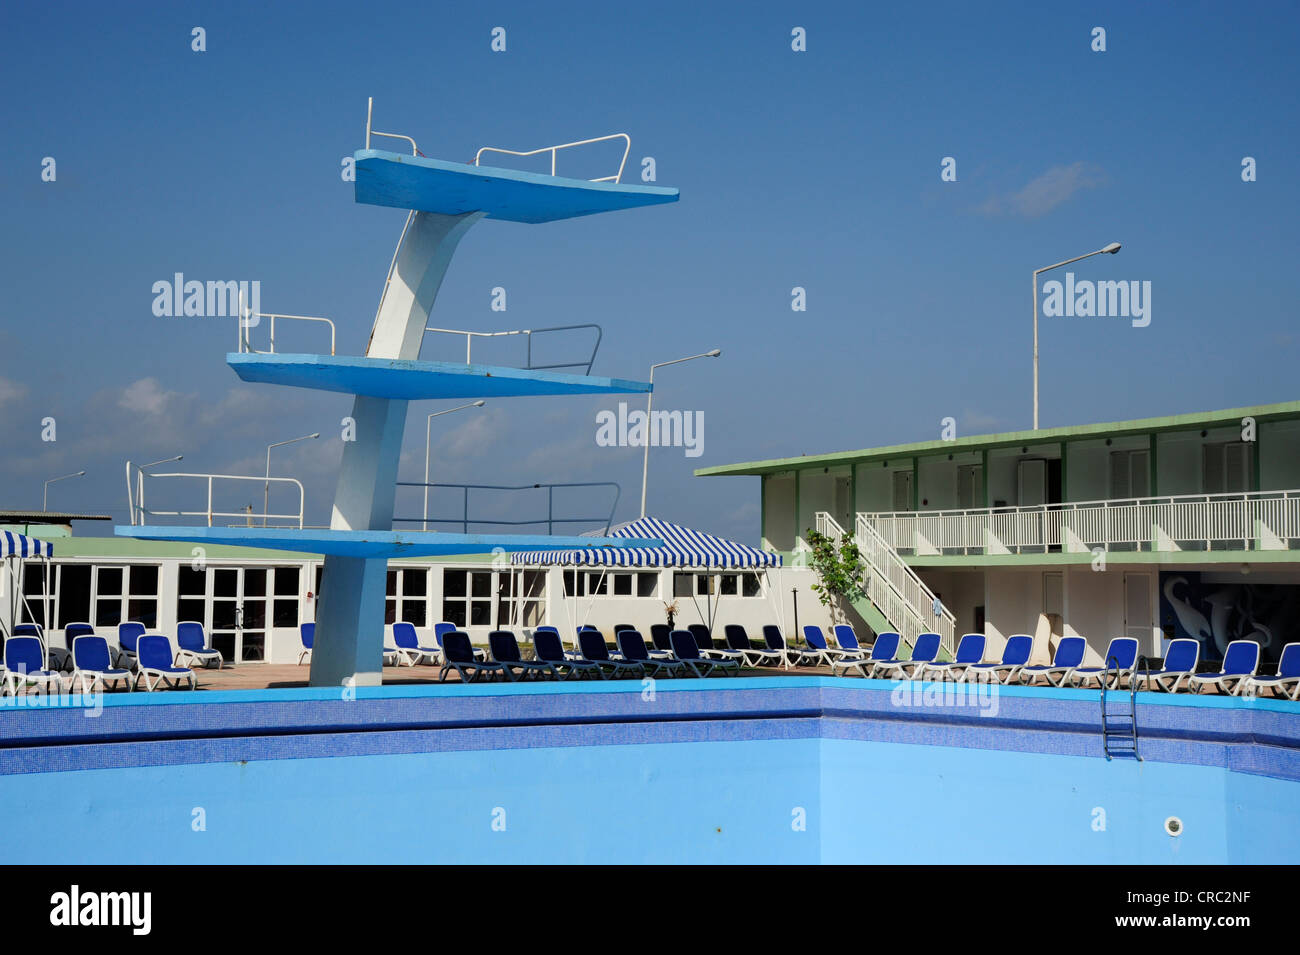 Swimming Pool With A Diving Platform Hotel Riviera On The Malecon Stock Photo Royalty Free